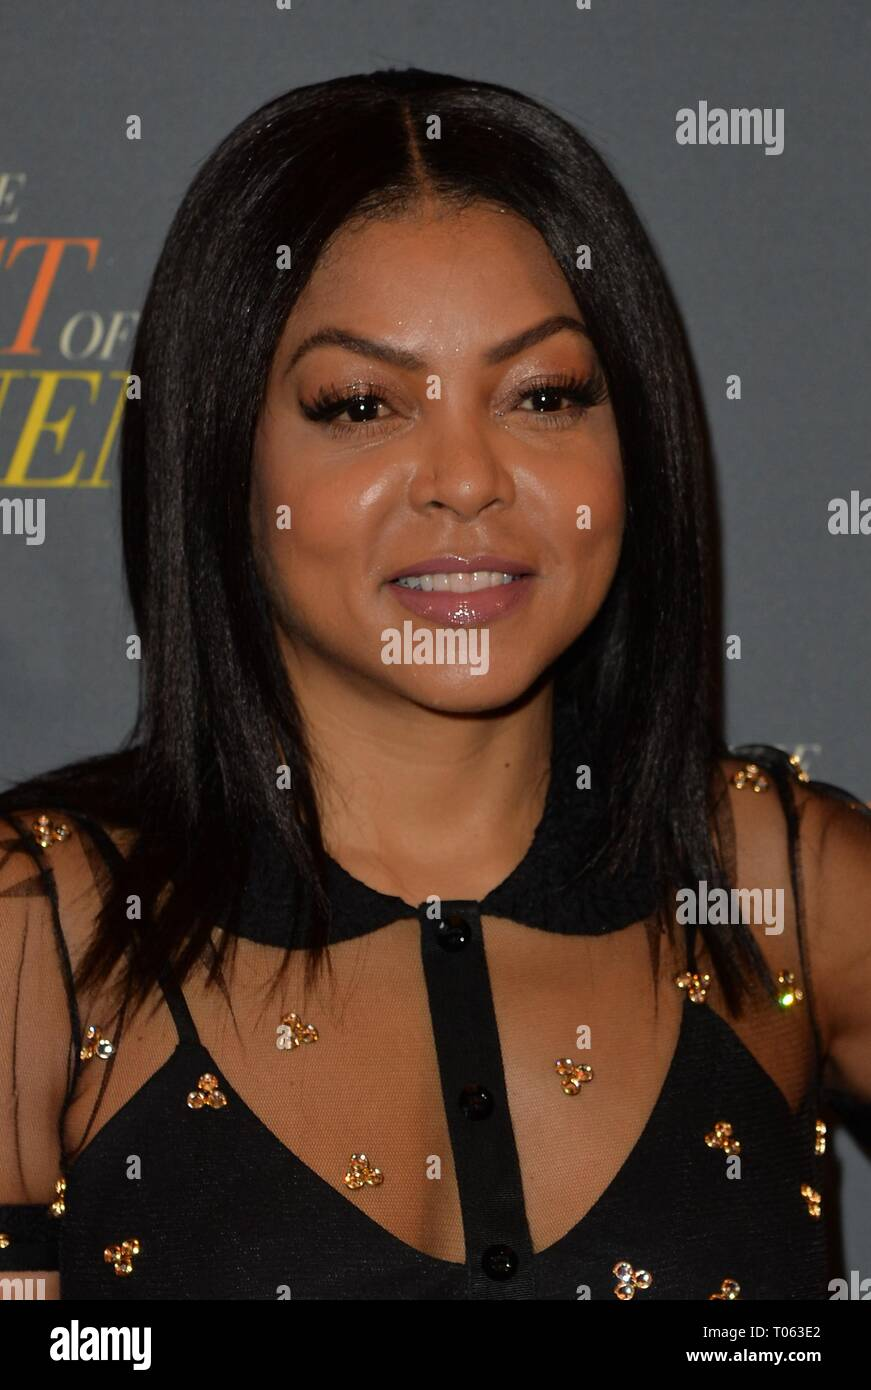 New York, USA. 17th Mar, 2019. Taraji P. Henson at arrivals for THE BEST OF ENEMIES Photo Call, The Whitby Hotel Theater, New York, NY March 17, 2019. Credit: Kristin Callahan/Everett Collection/Alamy Live News - Stock Image